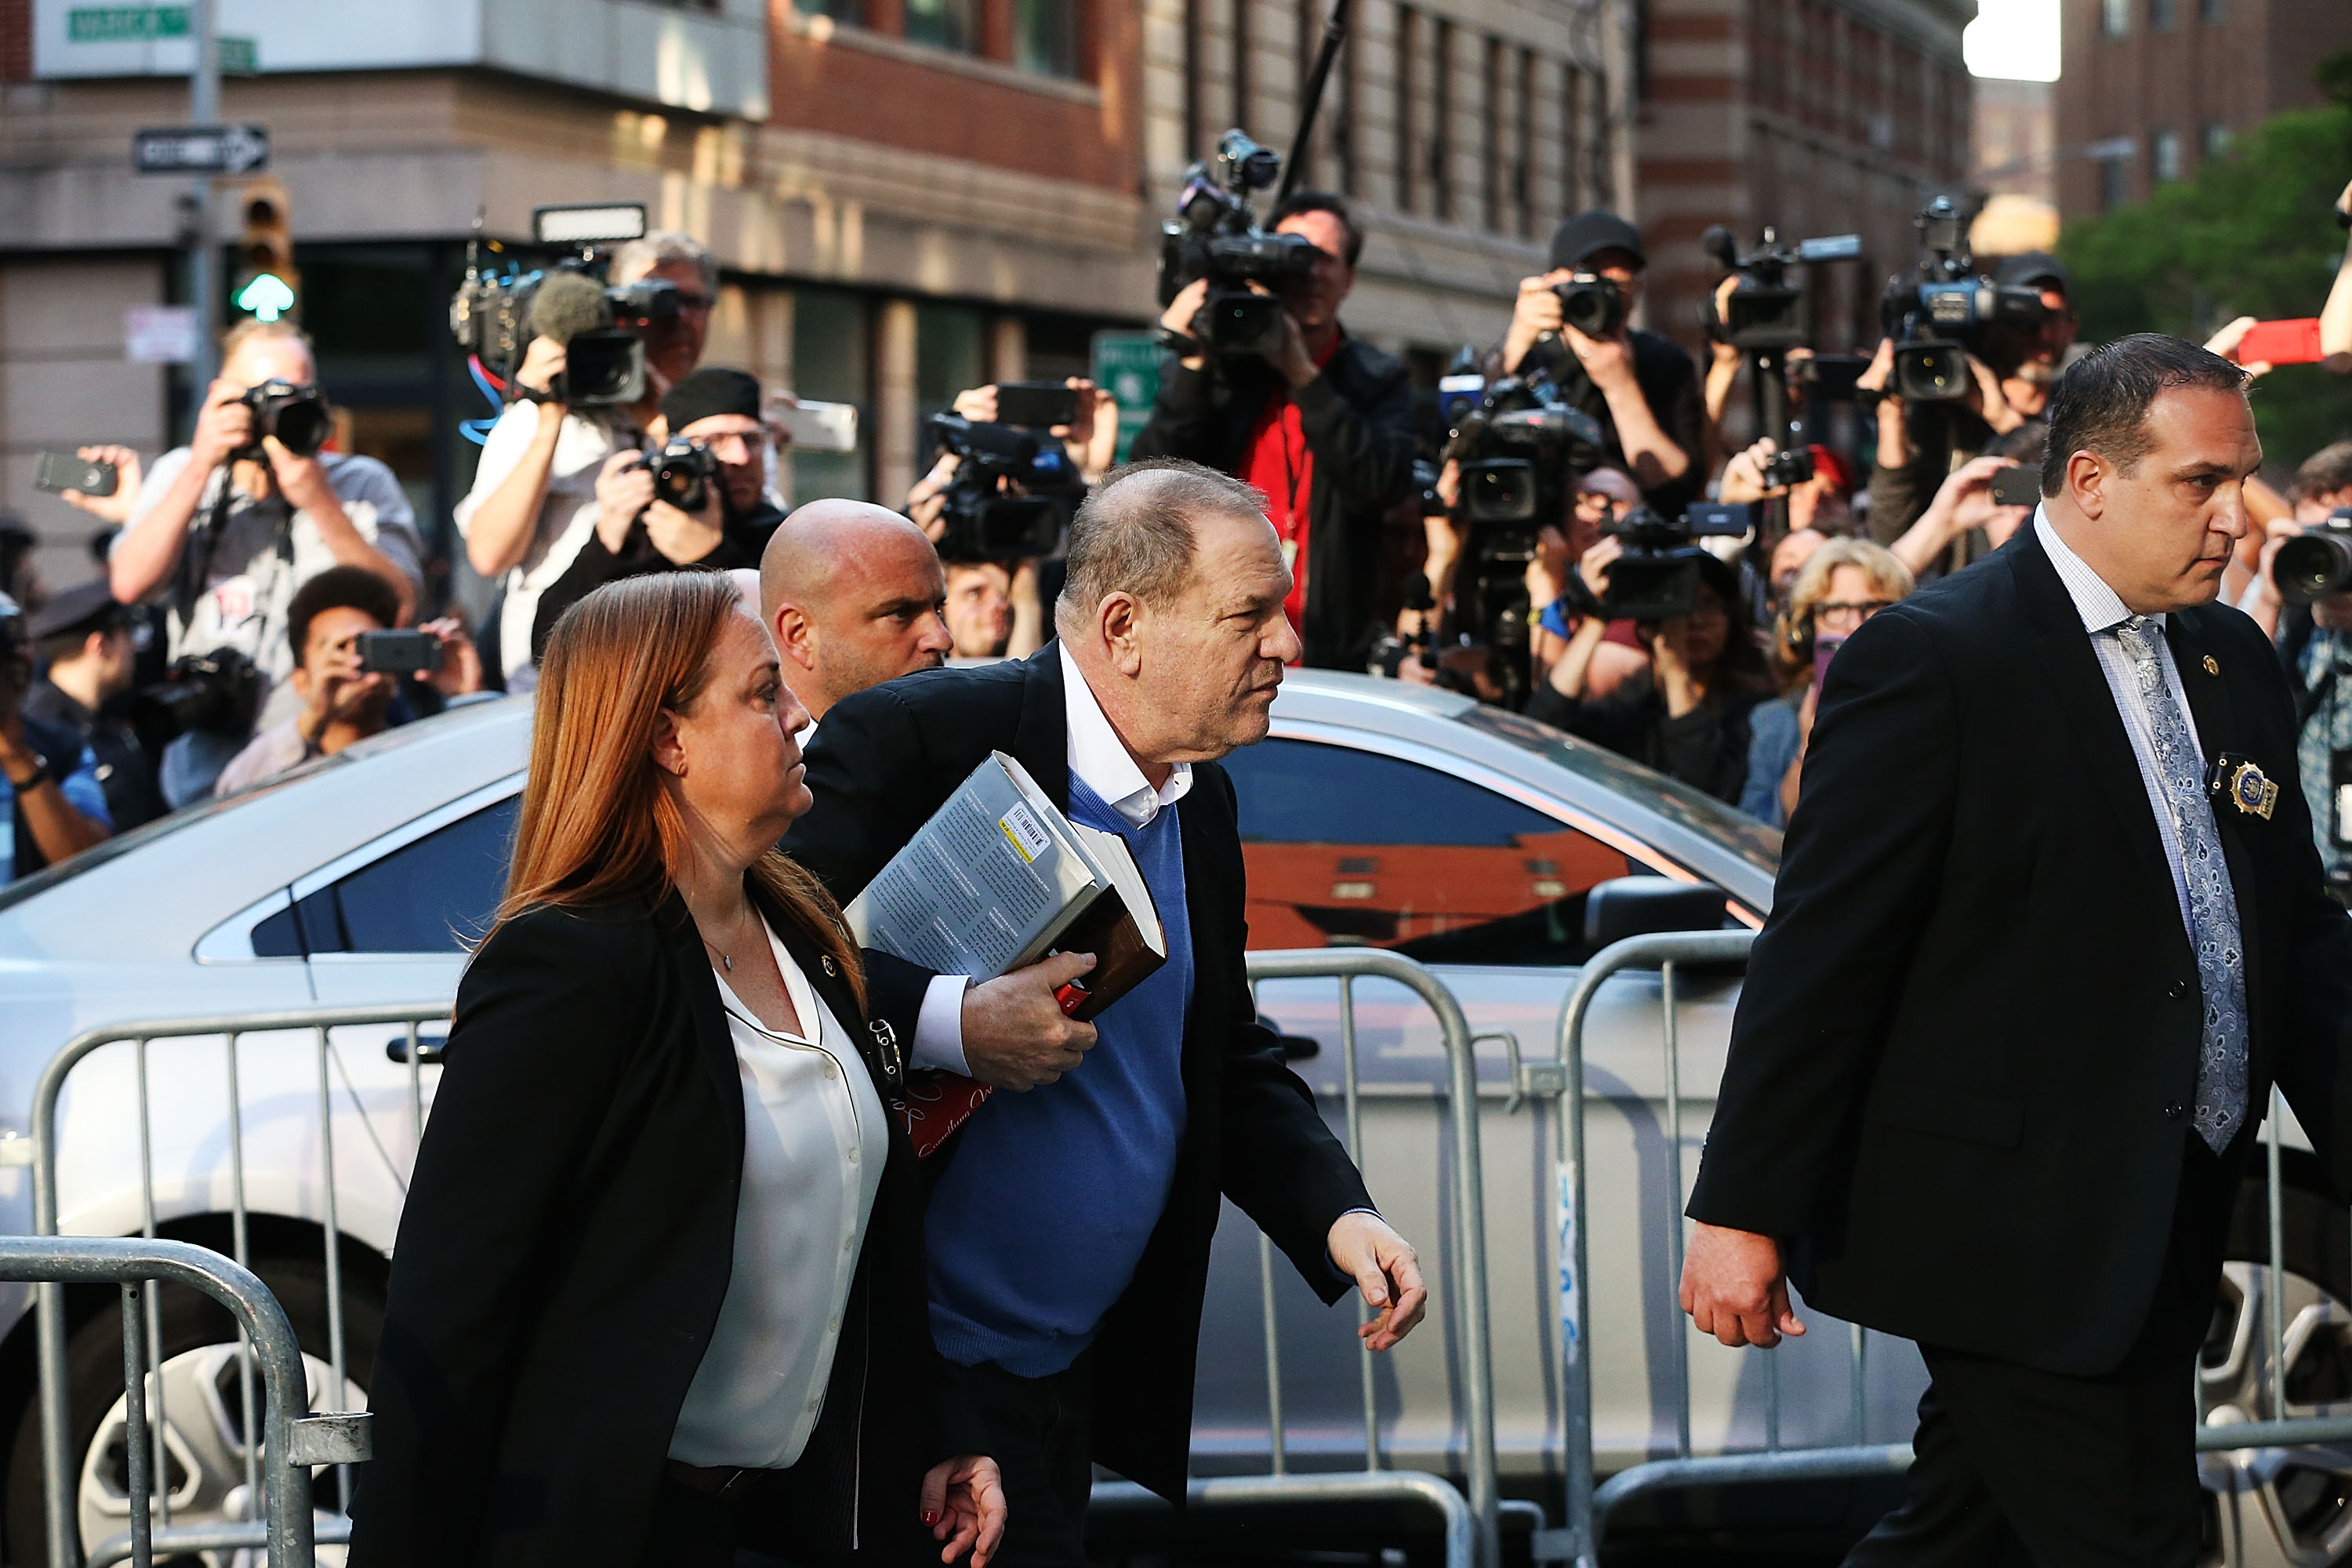 Harvey Weinstein arrives at the New York Police Department's First Precinct to turn himself in after being served with criminal charges by the Manhattan District Attorney's office on May 25, 2018 in New York City. The former movie producer faces charges in connection with accusations made by aspiring actress Lucia Evans who has said that Weinstein forced her to perform oral sex on him in his Manhattan office in 2004. Weinstein (66) has been accused by dozens of other women of forcing them into sexual acts using both pressure and threats. The revelations of his behavior helped to spawn the global #MeToo movement. Weinstein is carrying a biography of Elia Kazan.